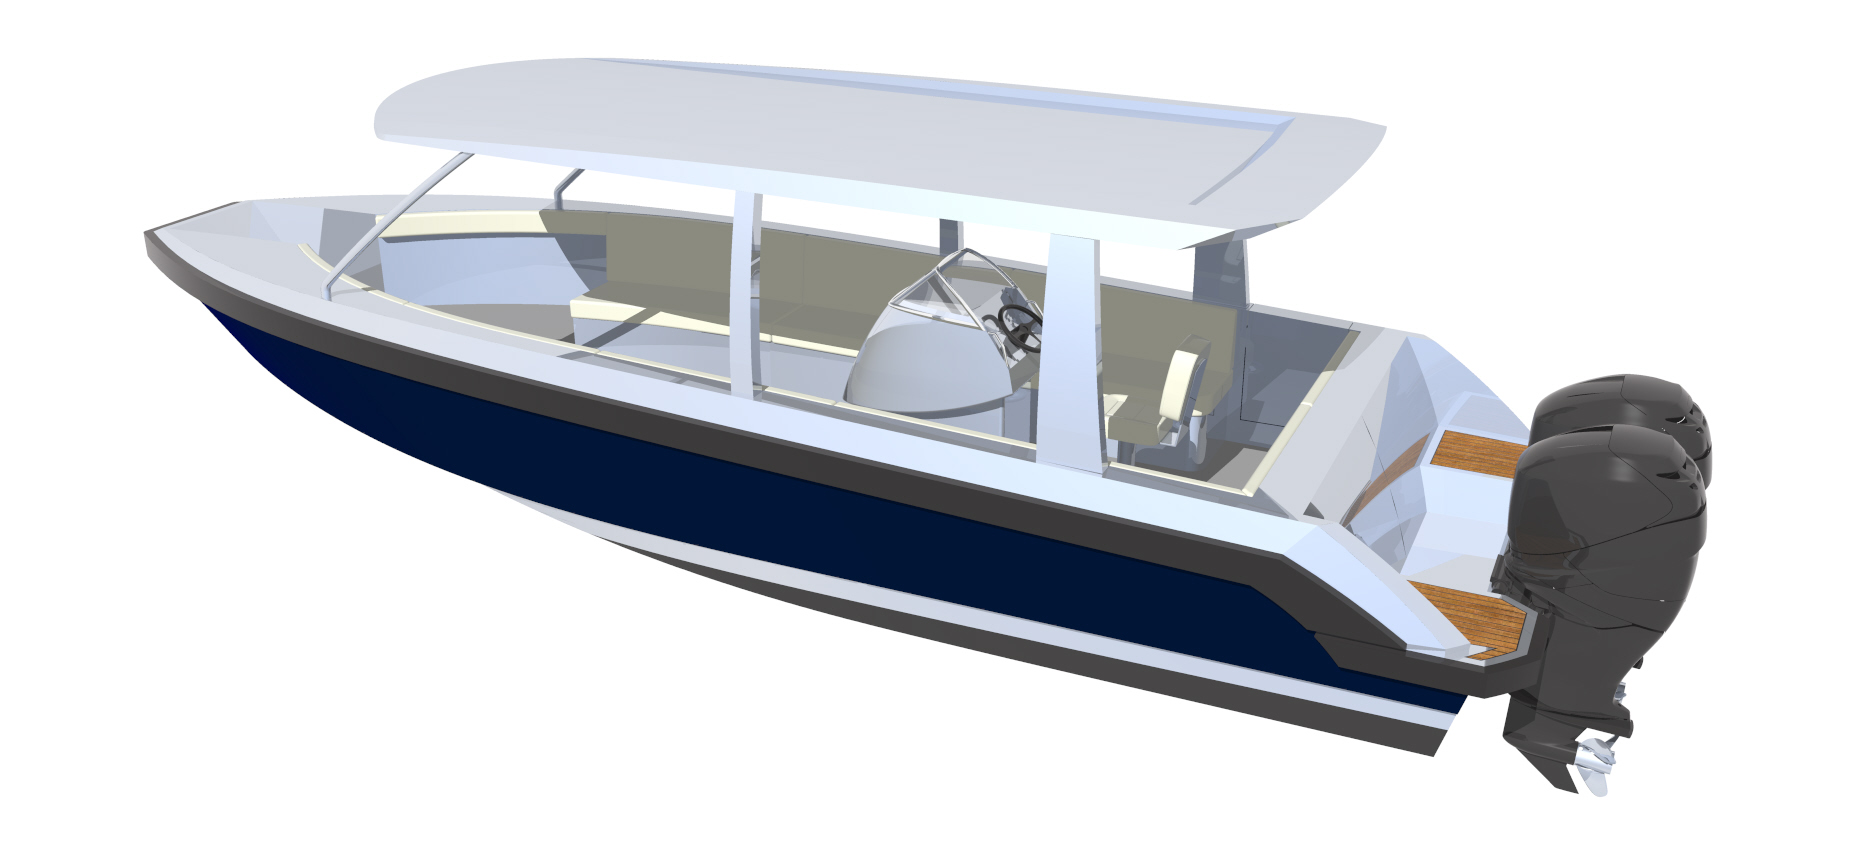 8.5m tender/ water taxi